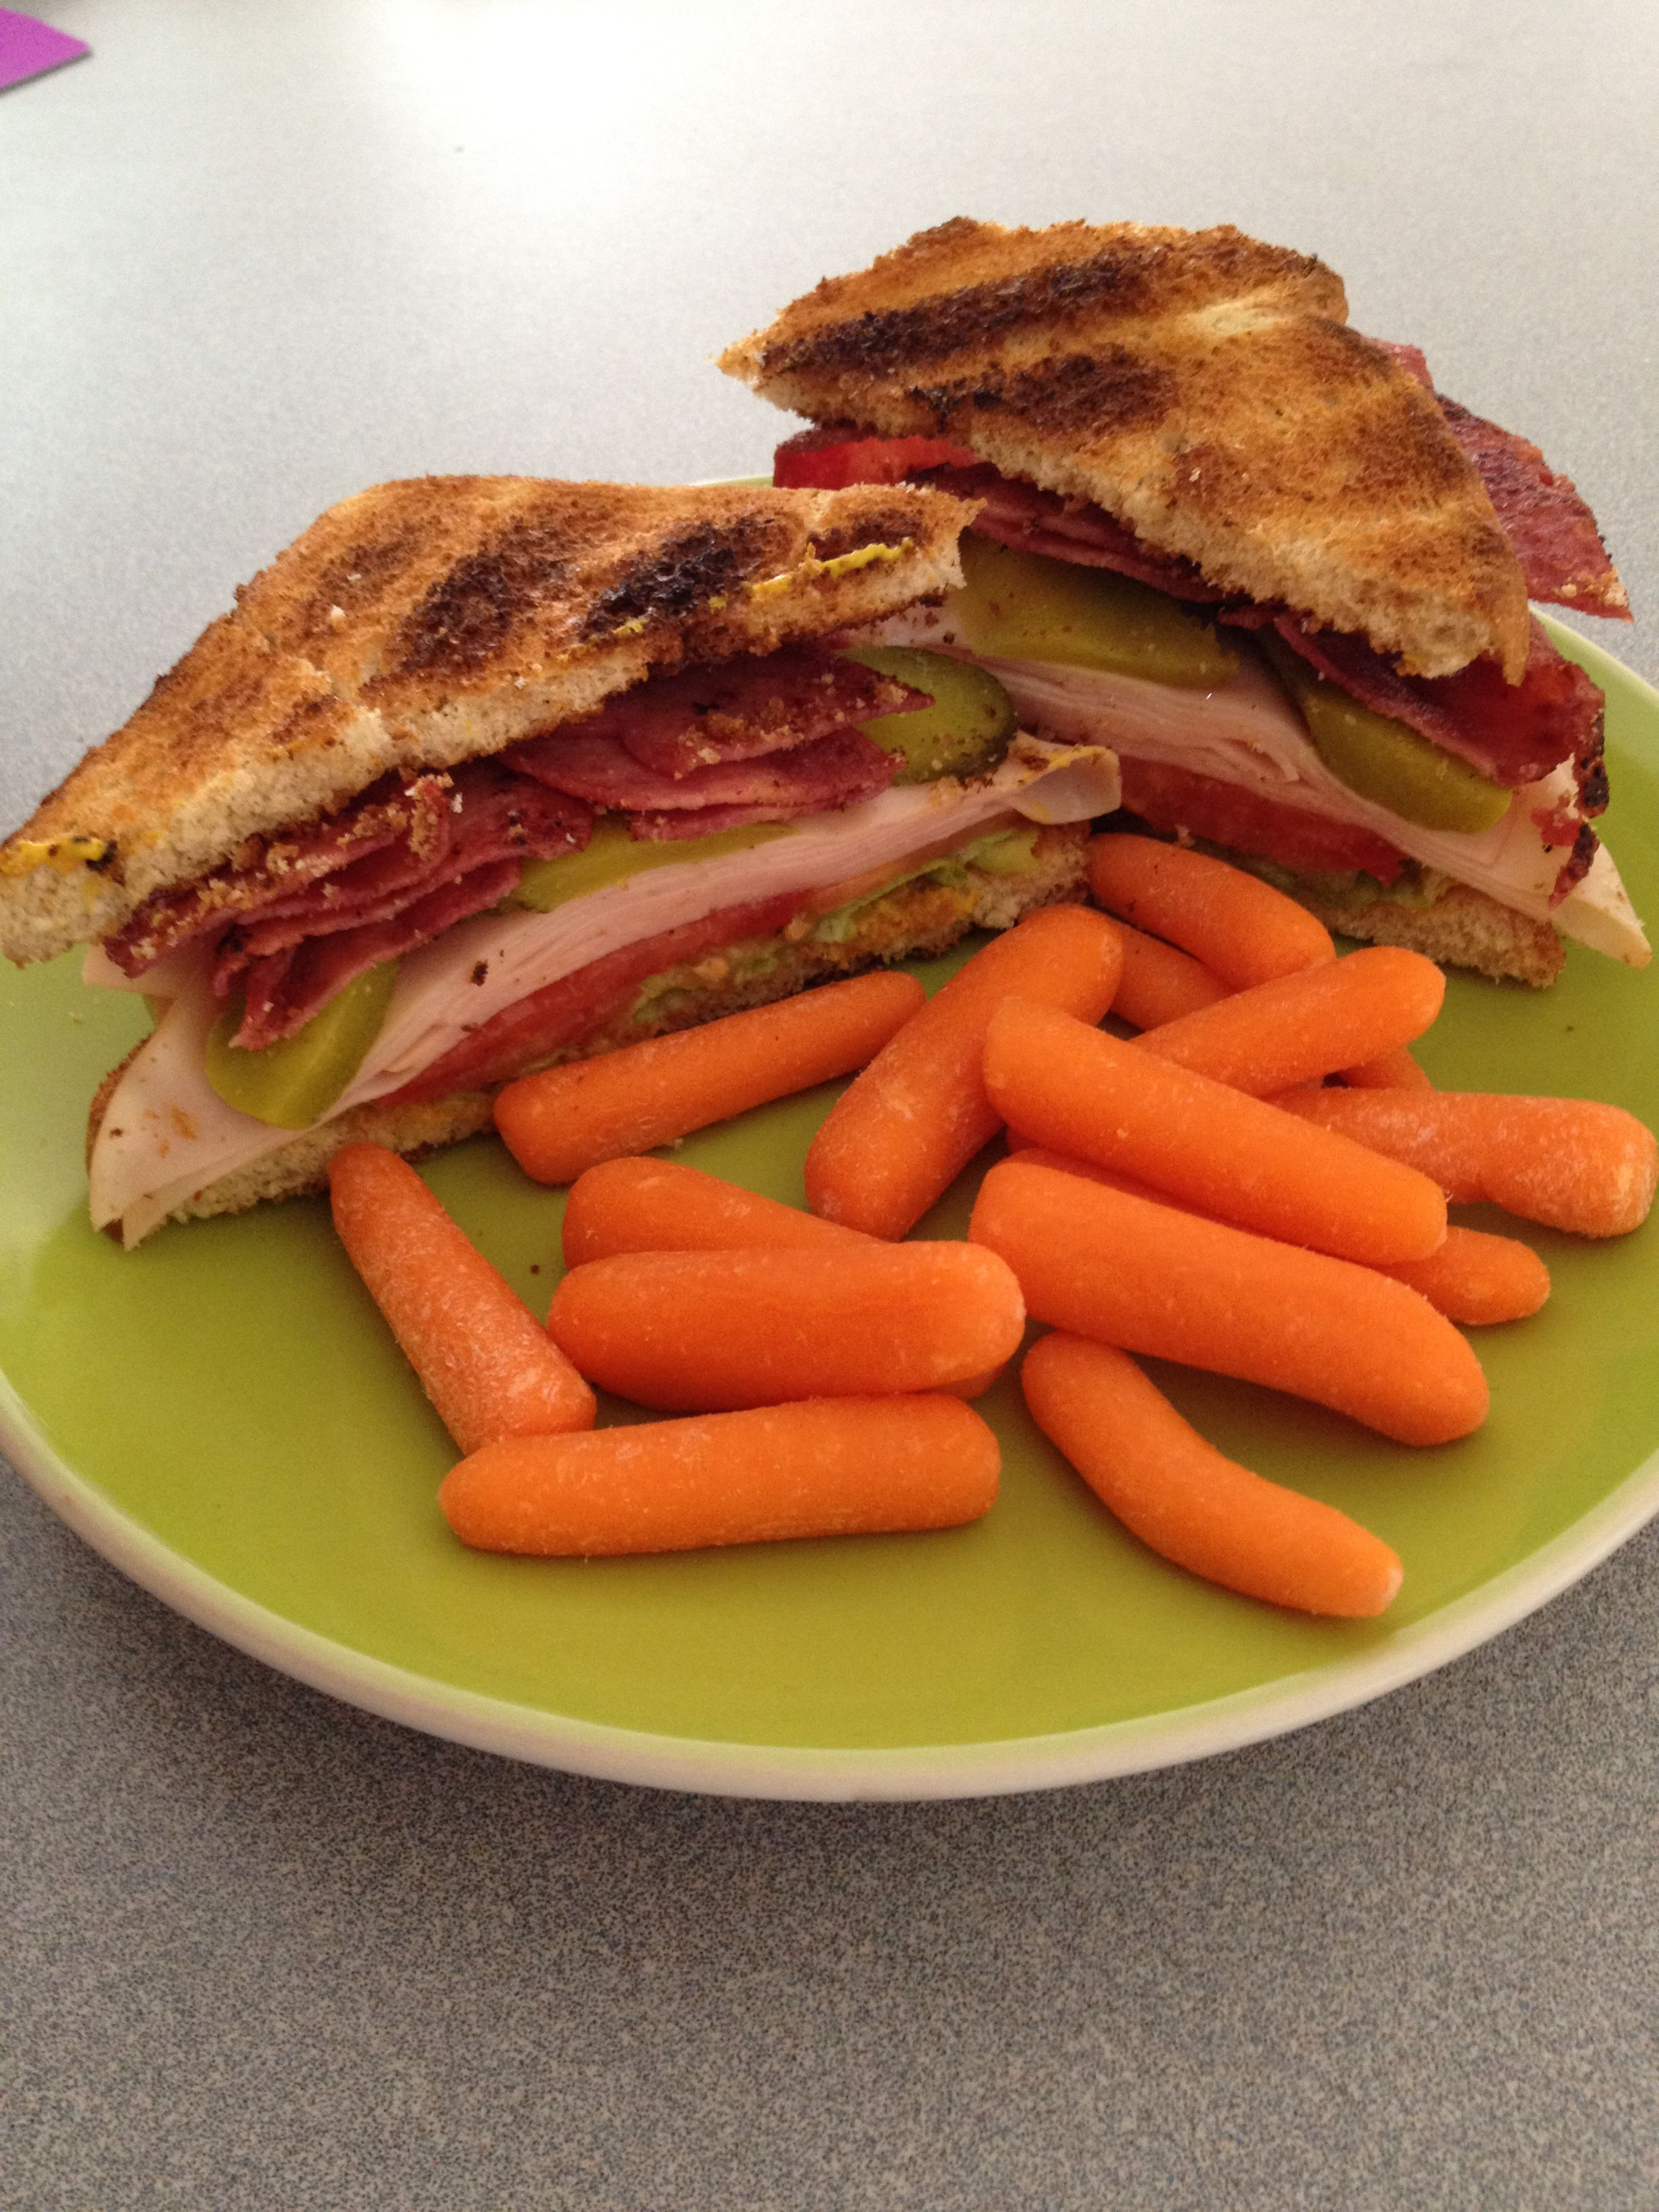 only 90 calories!); 6 slices kroger turkey lunch meat; 4 slices